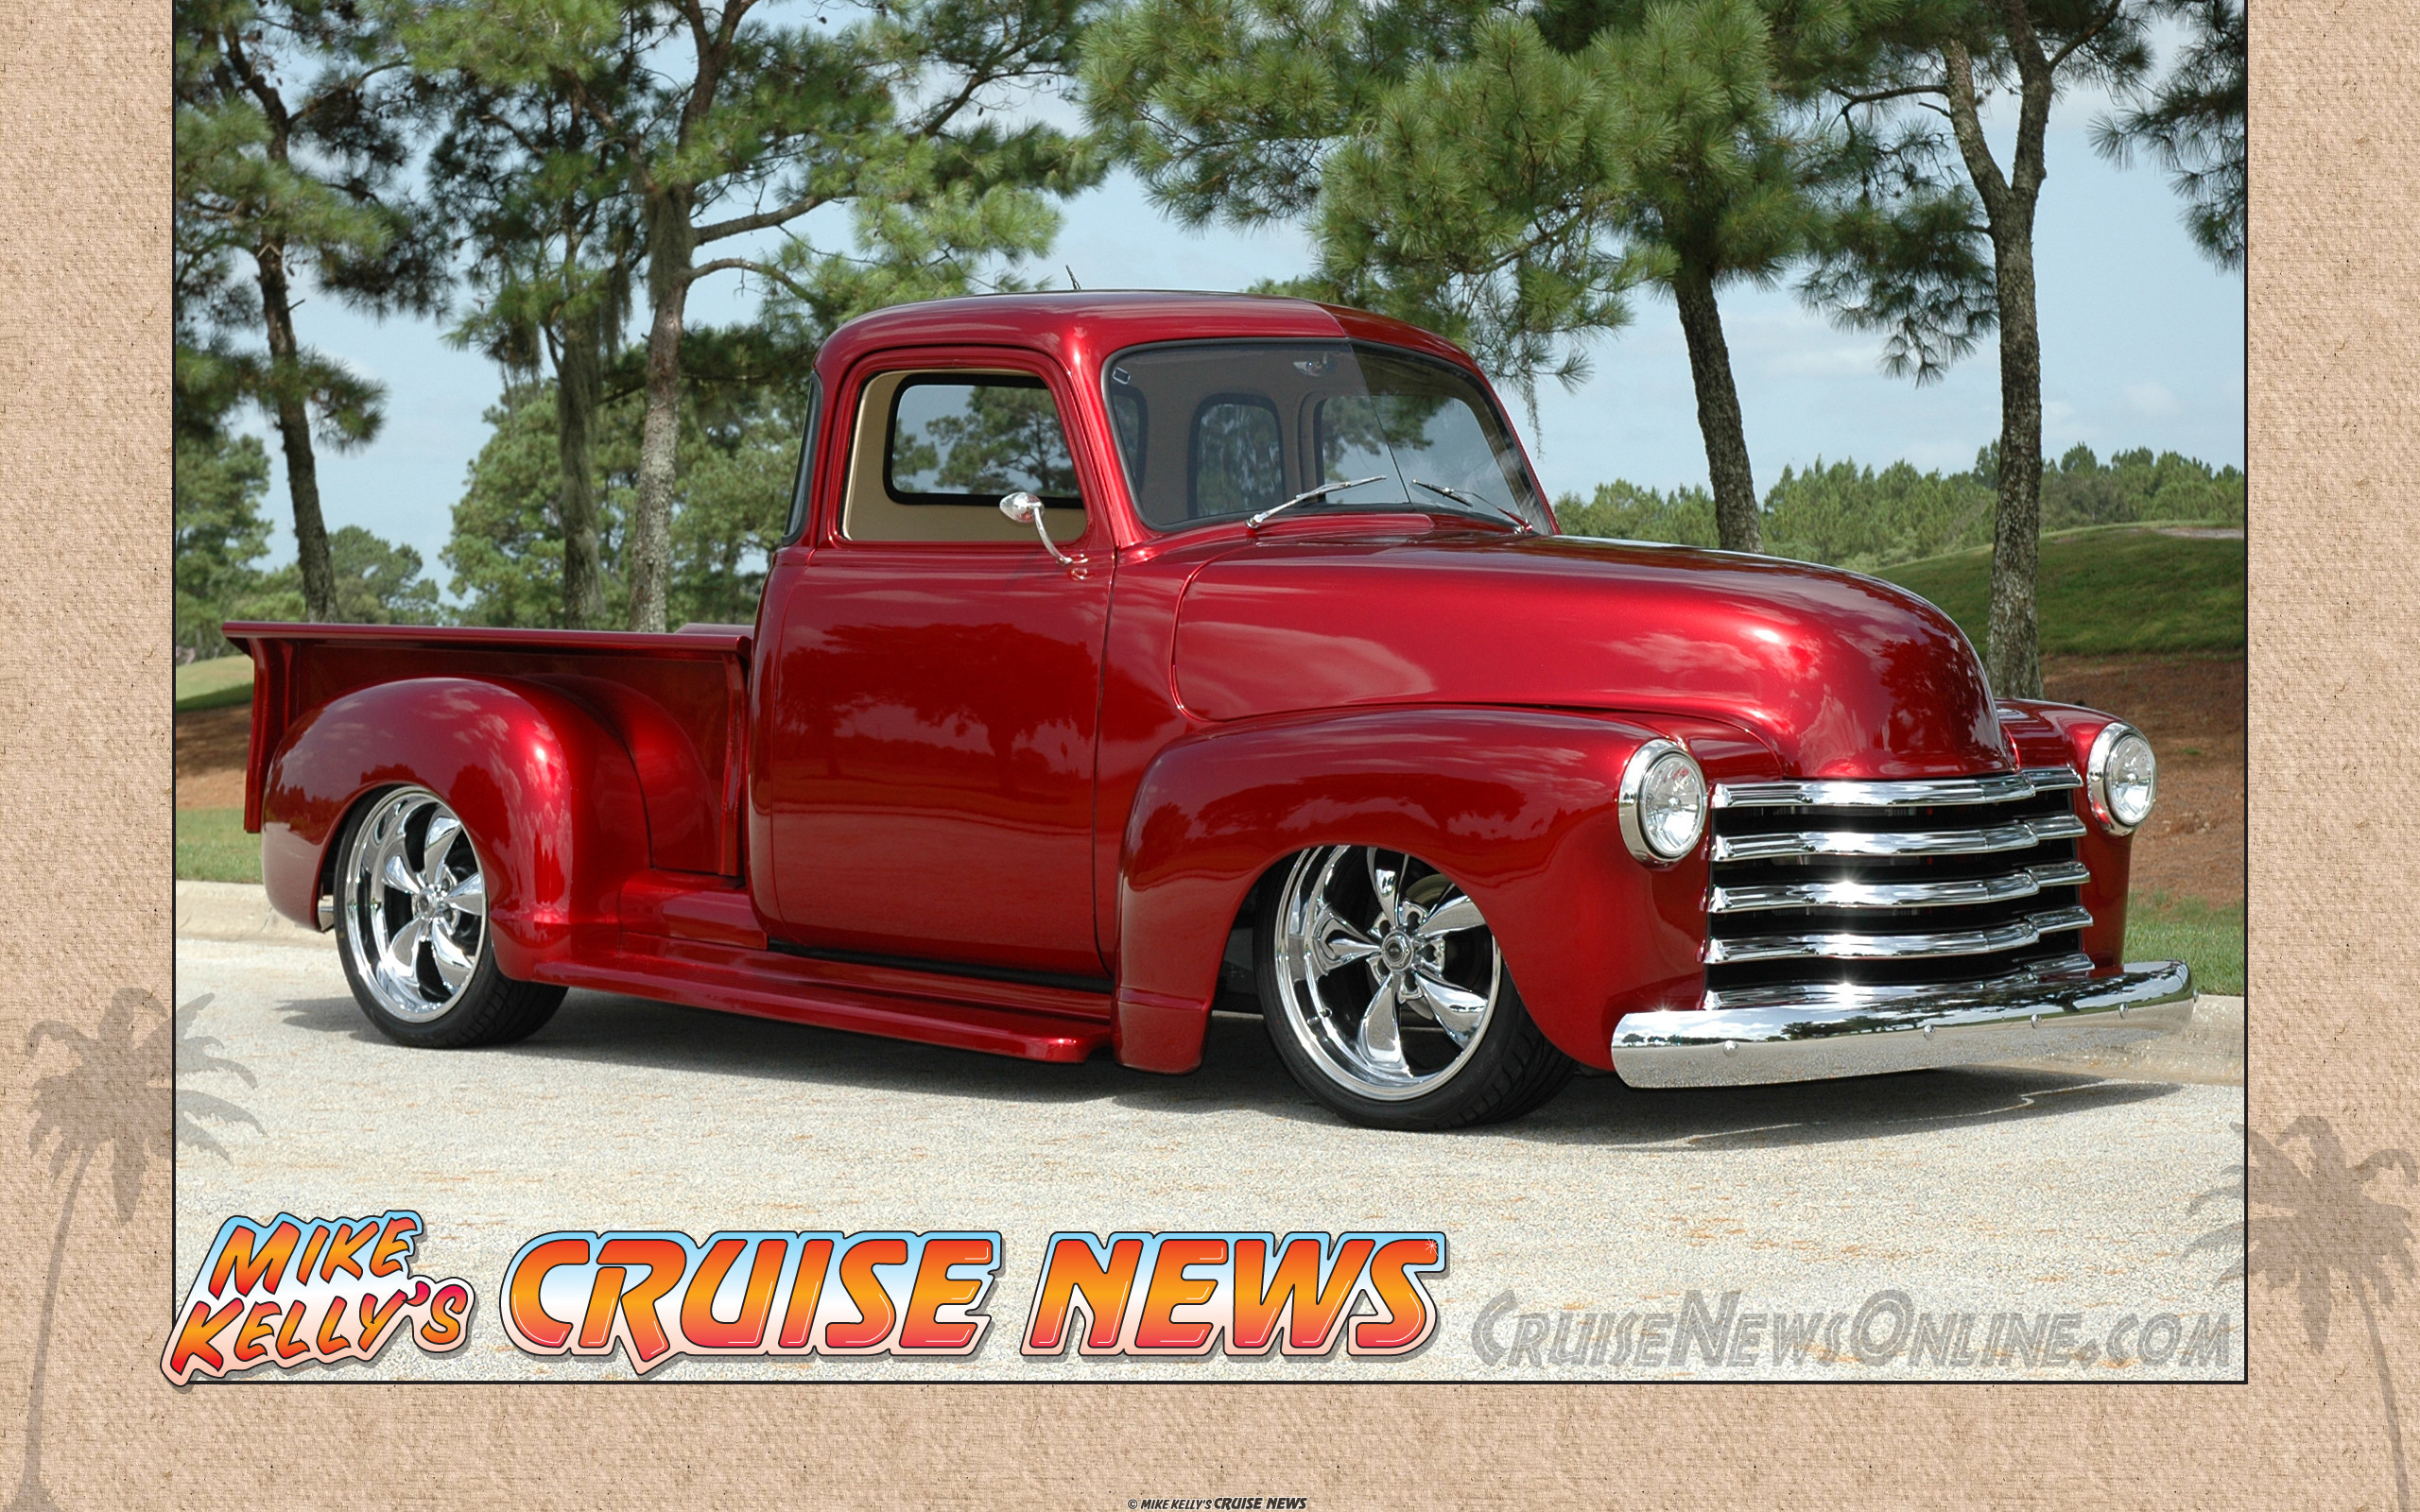 2560x1600 chevy pickup custom chevrolet vintage - Wallpapers, HD and HQ backgrounds  for your widescreen desktop or mobile device.